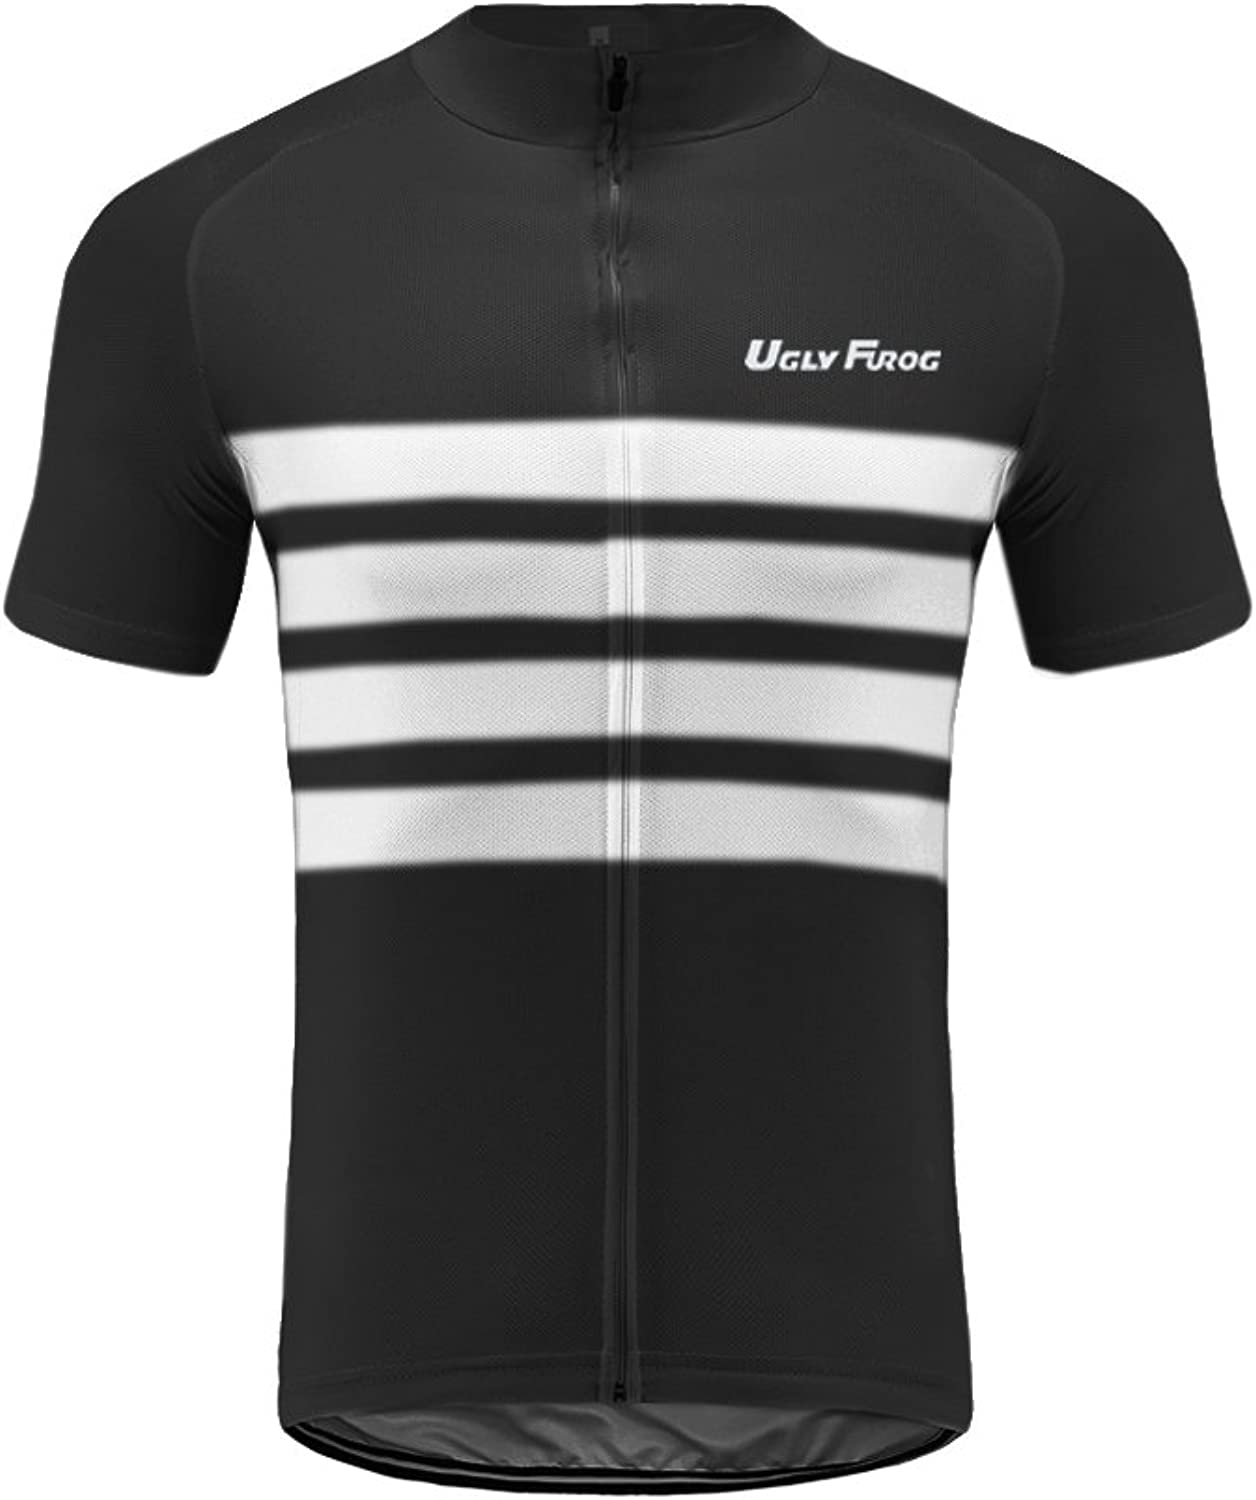 Uglyfrog 2018 Mens Short Sleeve Cycling Jersey Outdoor Sports Summer Style Bike Clothes Top CCJ19